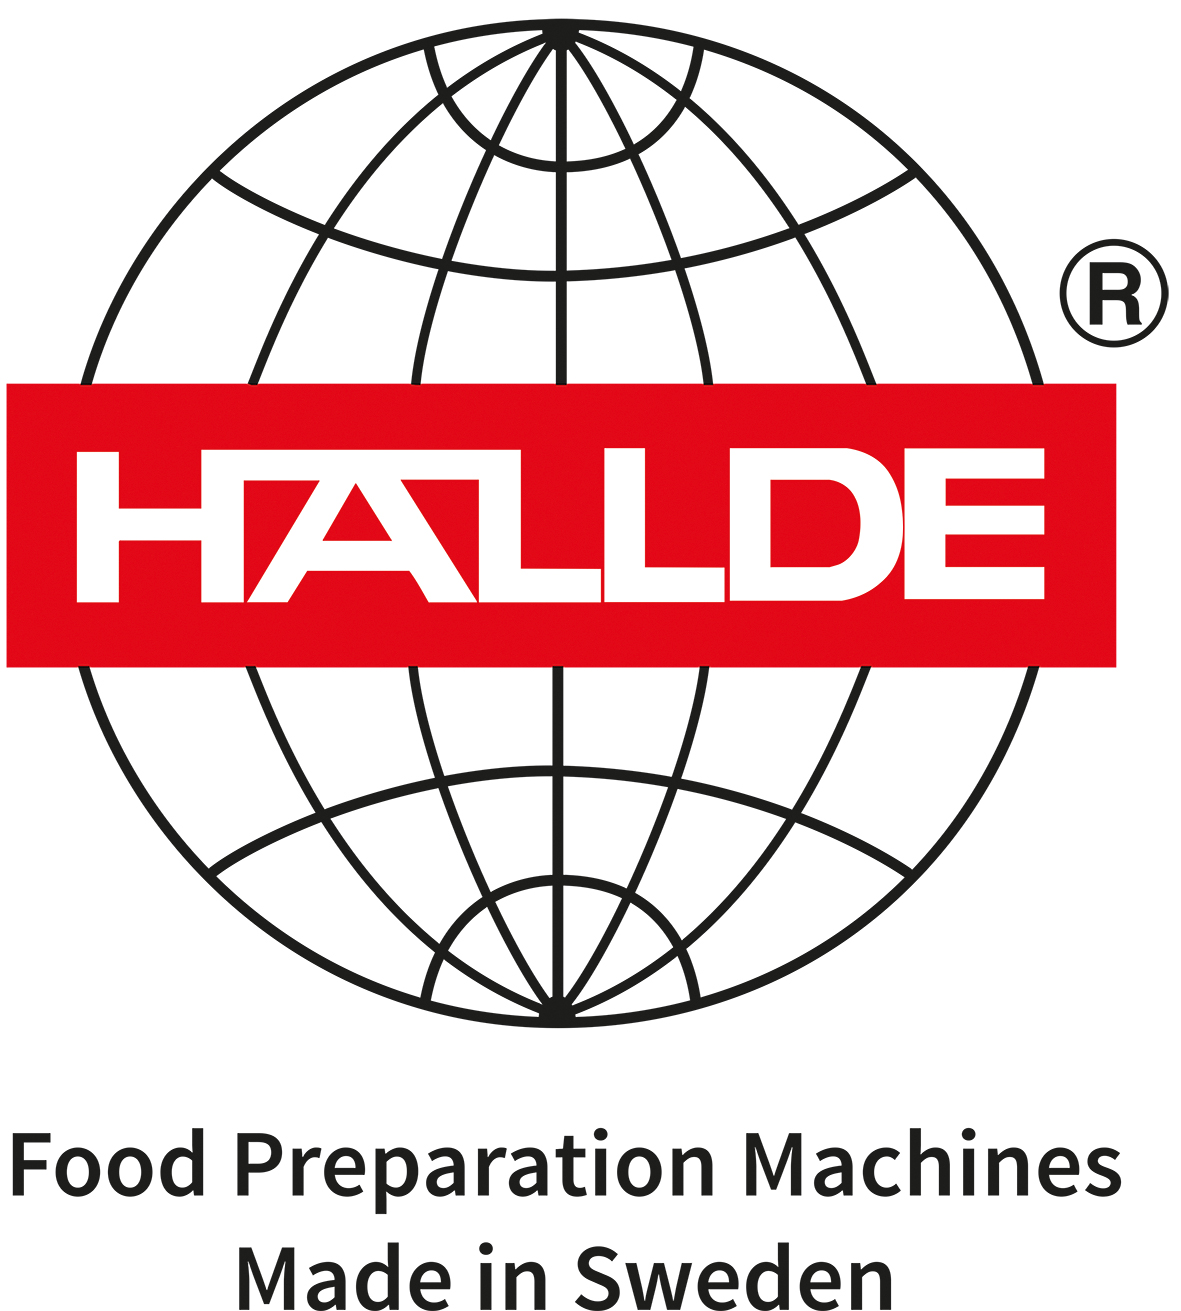 hallde_logotype_press.jpg